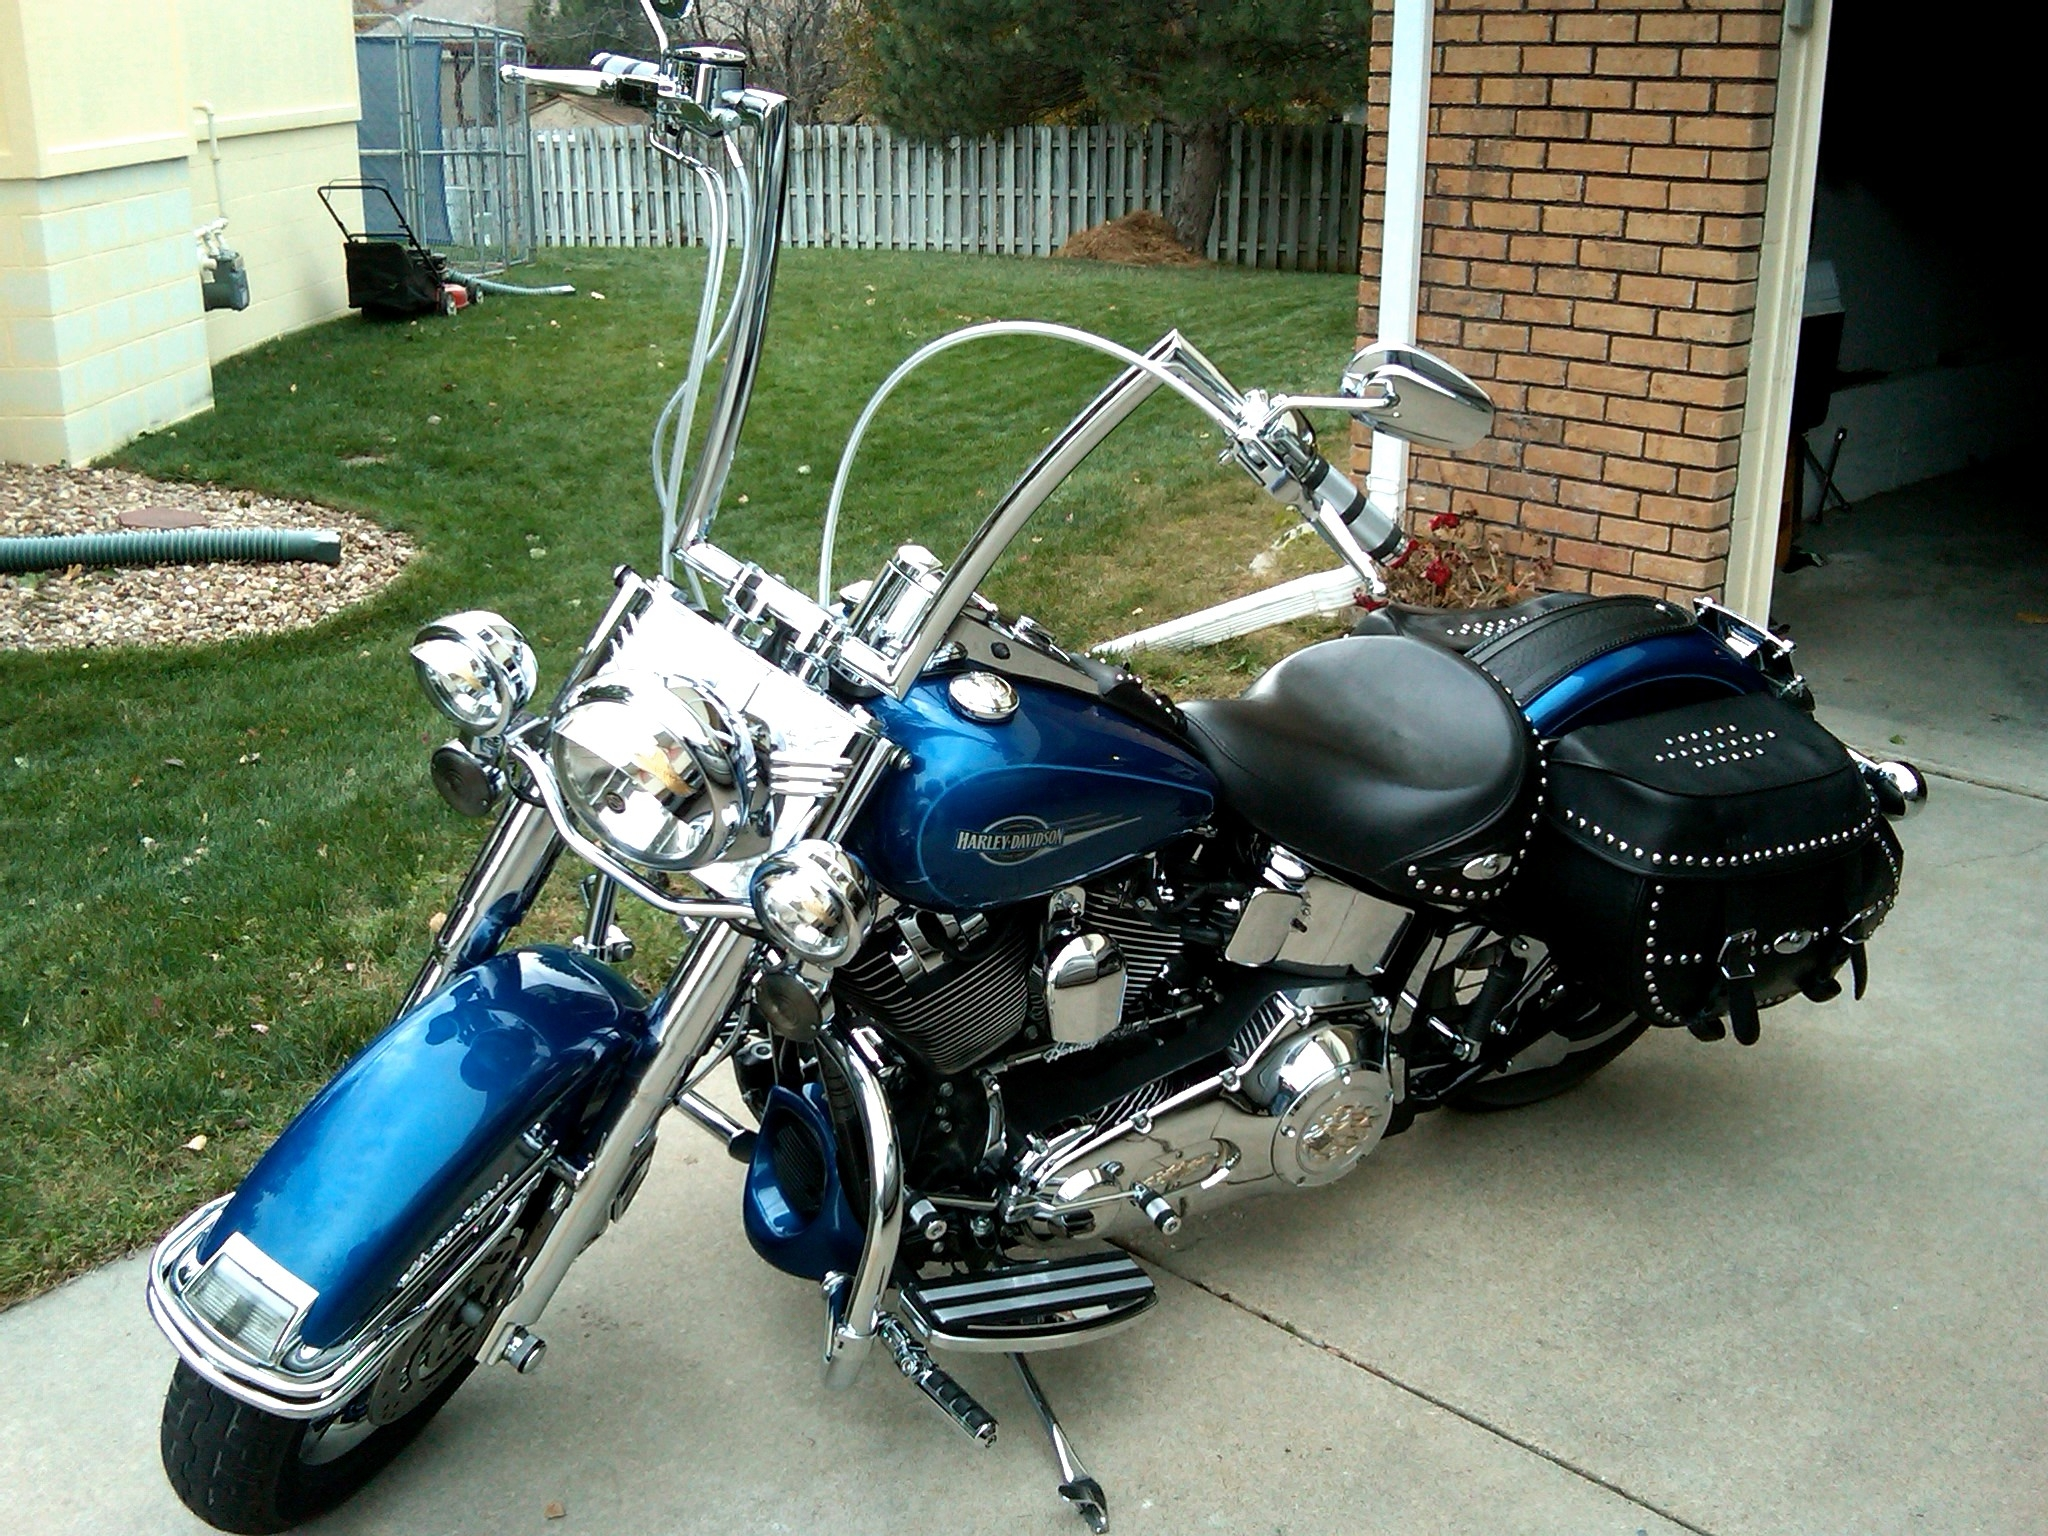 Show Your Motorcycle On Bikerplaza Com Page 2